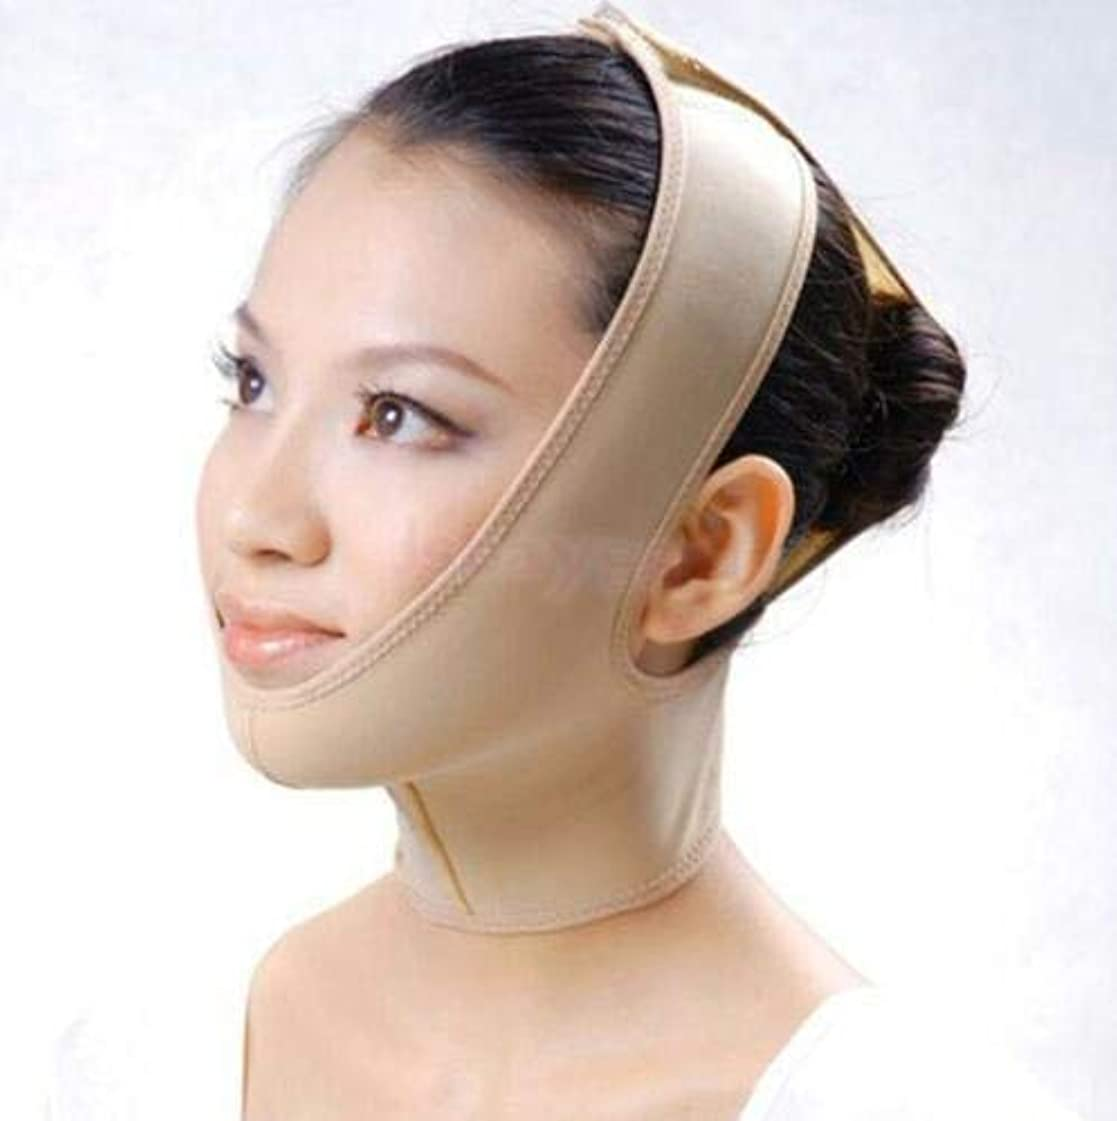 メッセンジャー溢れんばかりのメディックFidgetGear ANTI WRINKLE V FACE CHIN CHEEK LIFT UP SLIMMING THIN BELT MASK STRAP BAND S-XXL Small